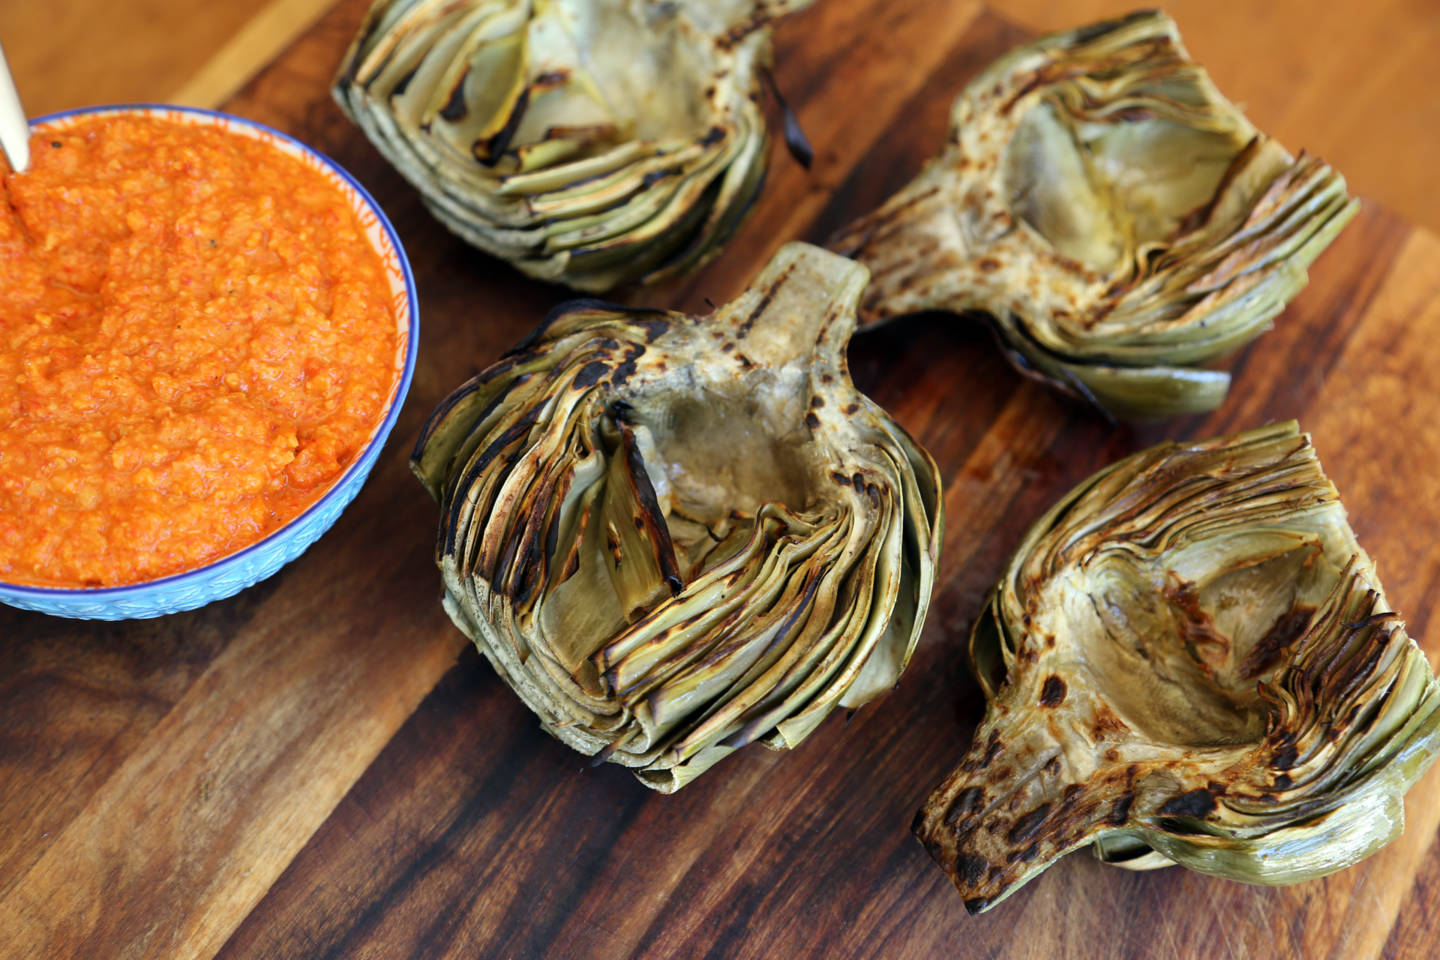 Grilled Artichokes with Romesco Sauce Wendy Goodfriend